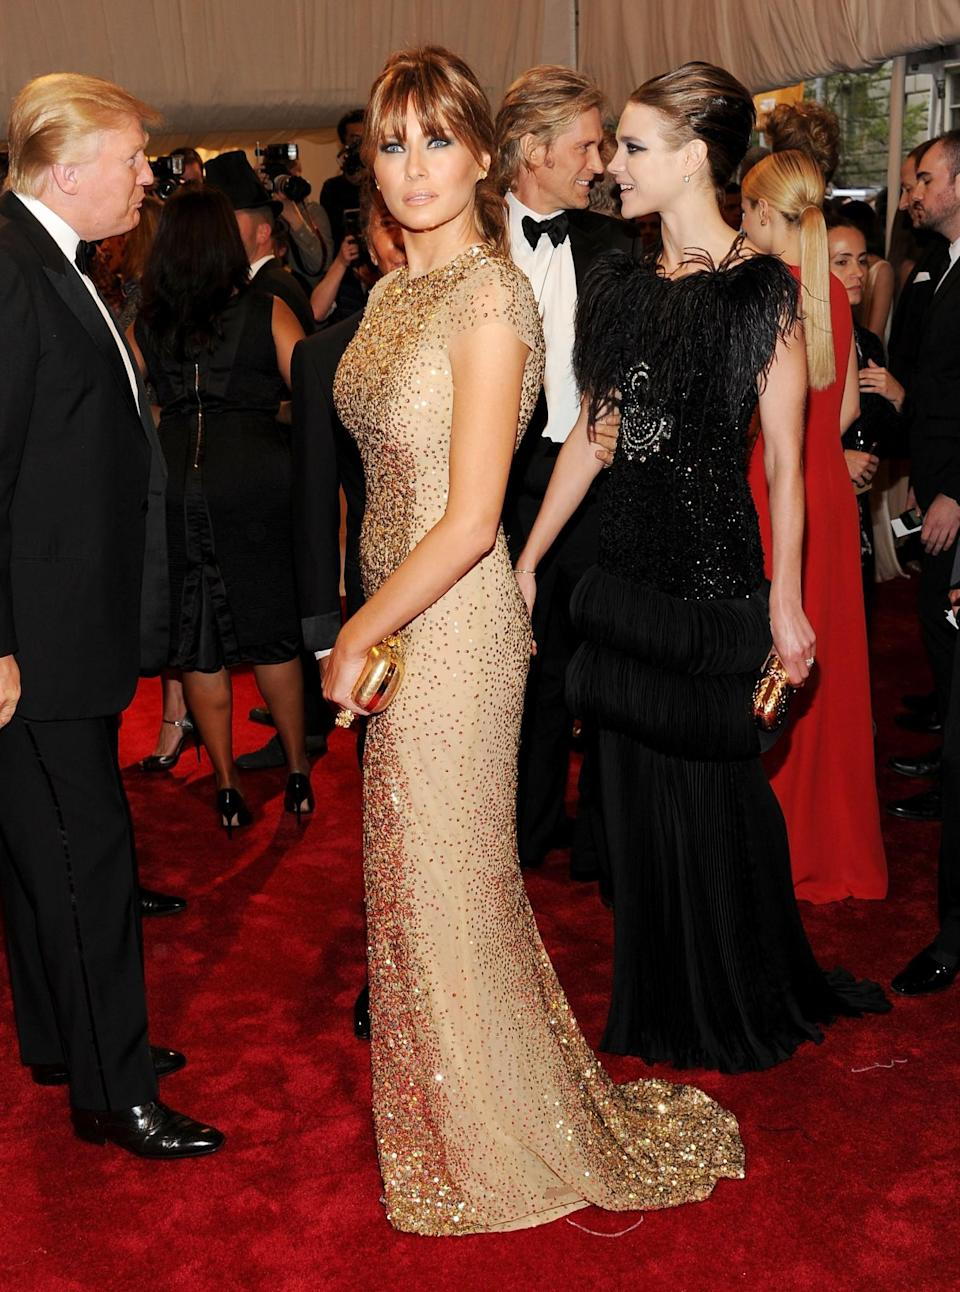 <p>Melania opted for a sequinned golden dress by Reem Acra for the 2011 Met Gala celebrating Alexander McQueen. Her accessories were by none other than McQueen. <i>[Photo: Getty]</i> </p>